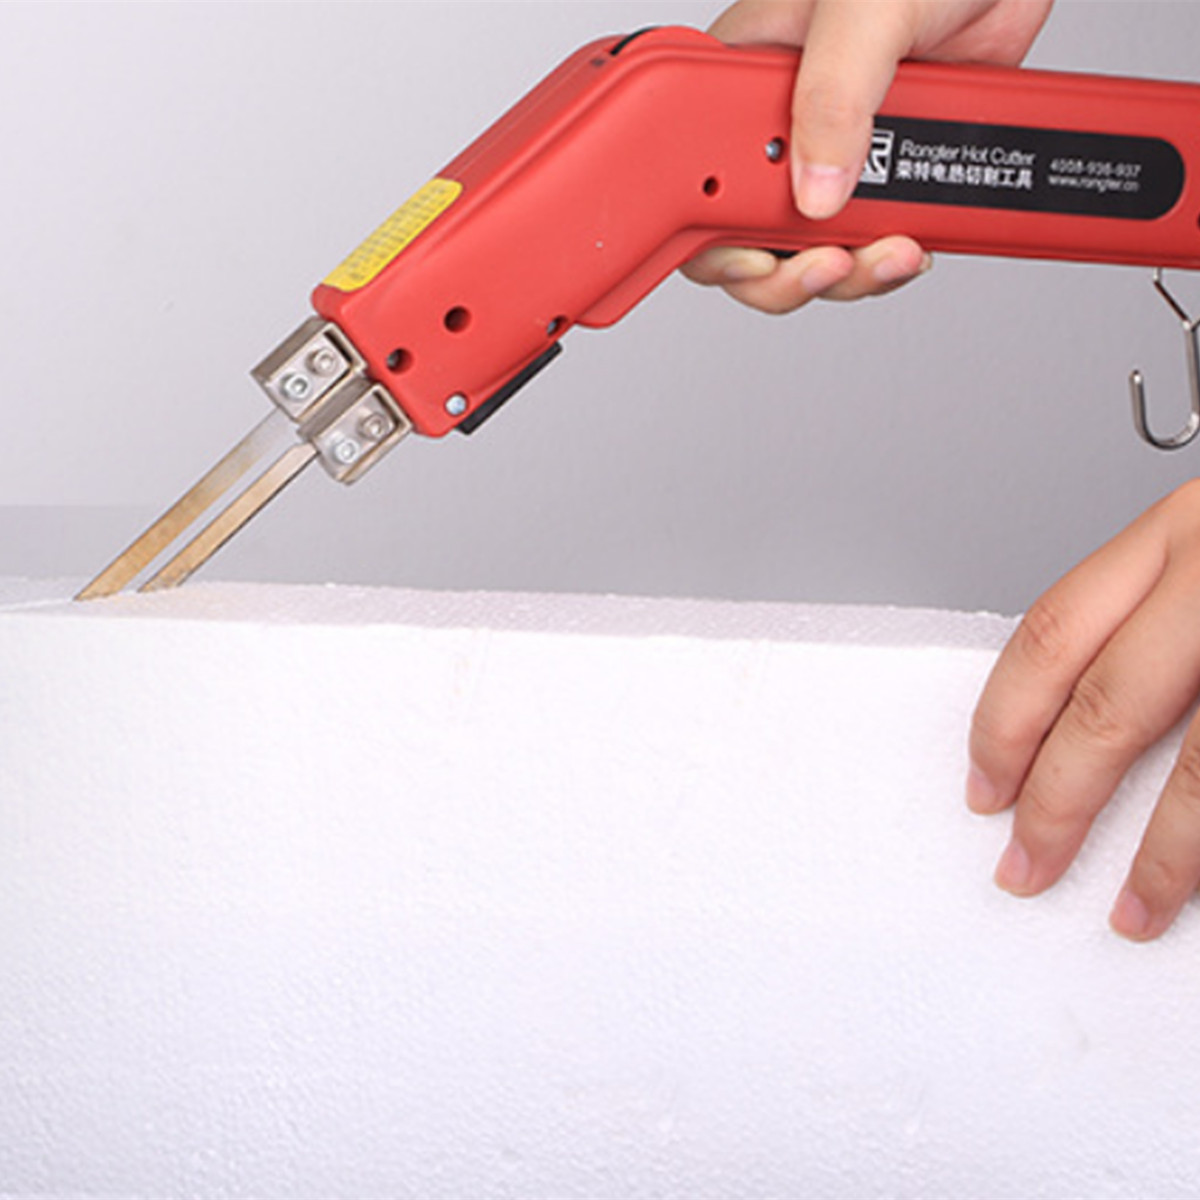 250W 220V Nordstrand Pro Electric Hot Knife Styrofoam Foam Cutter Tool with Blades Accessories